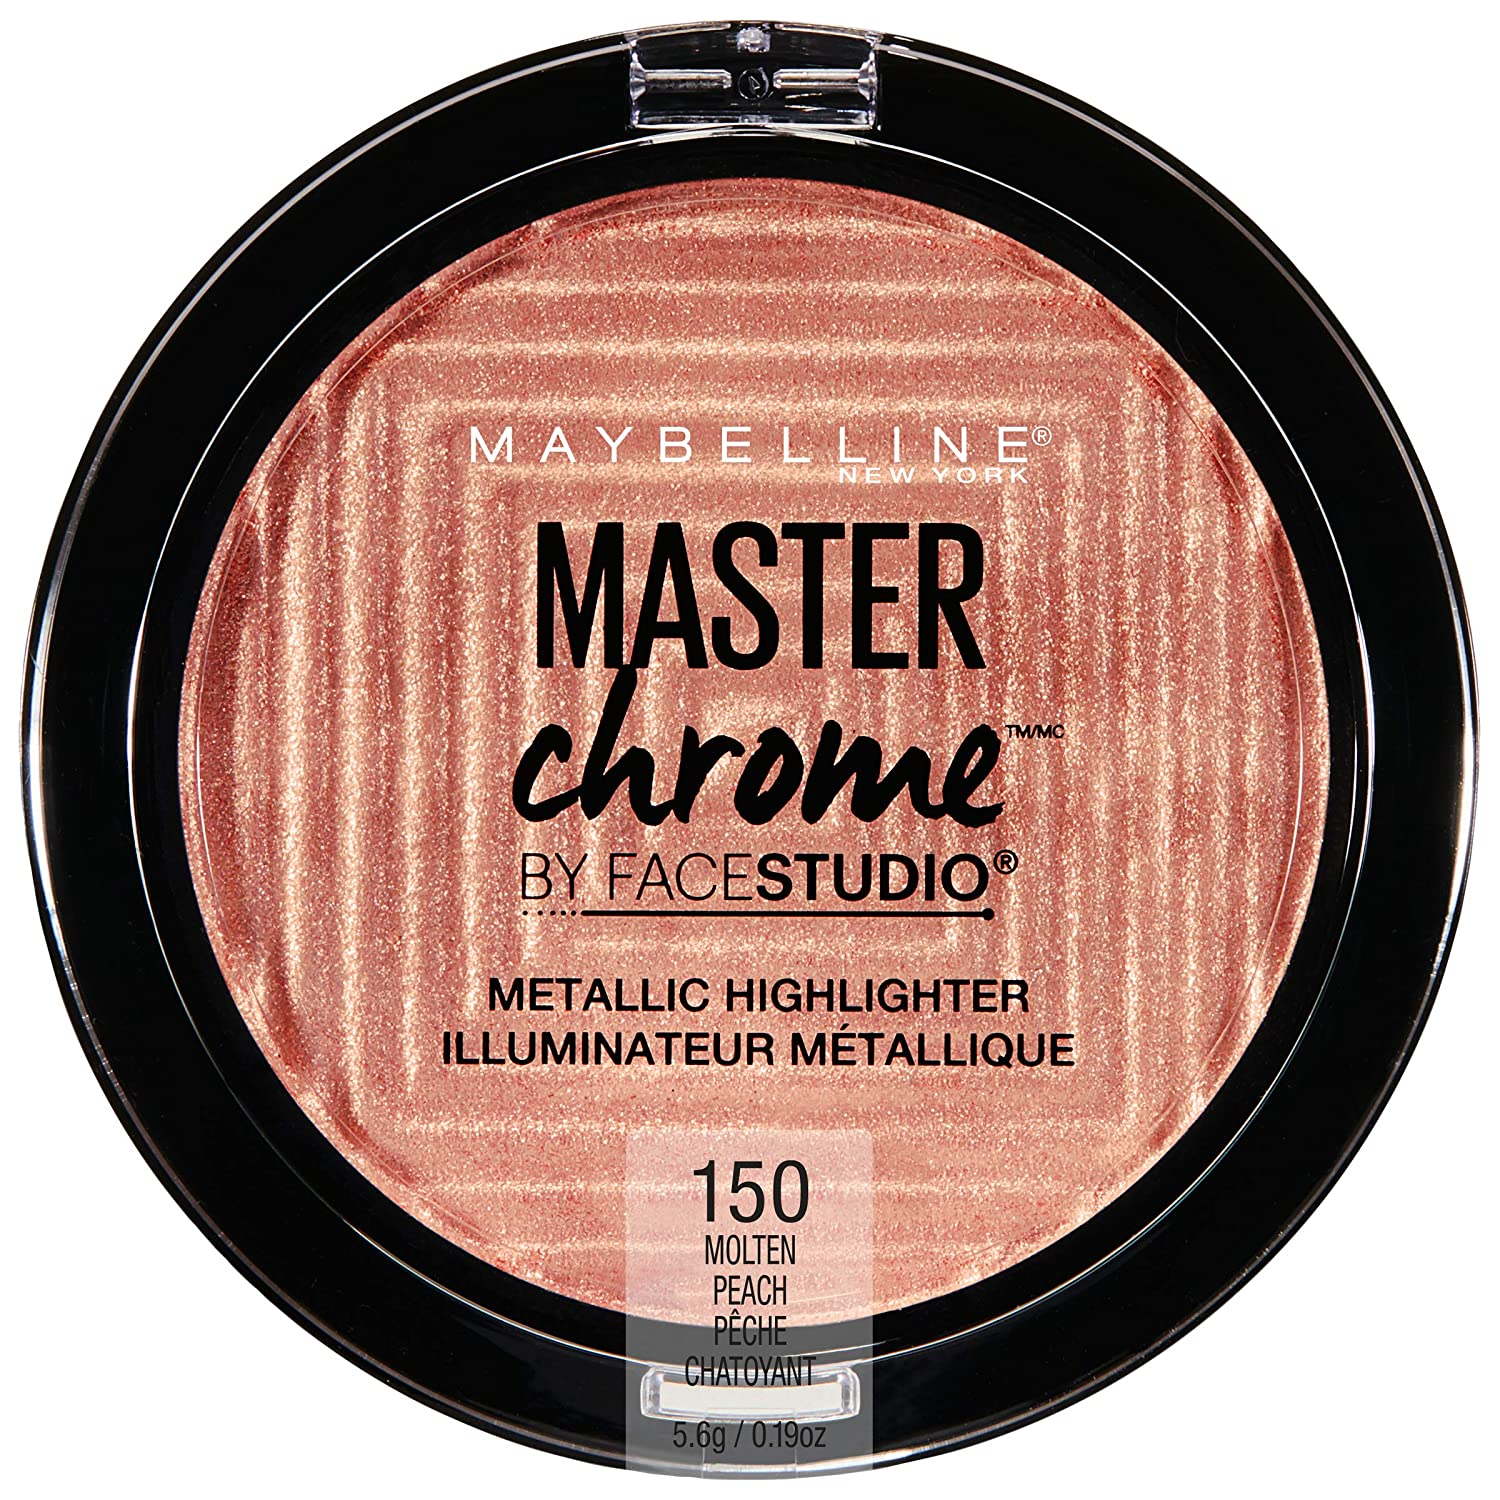 Maybelline New York Facestudio Master Chrome Metallic Highlighter Makeup, Molten Topaz, 0.19 oz. 041554553925